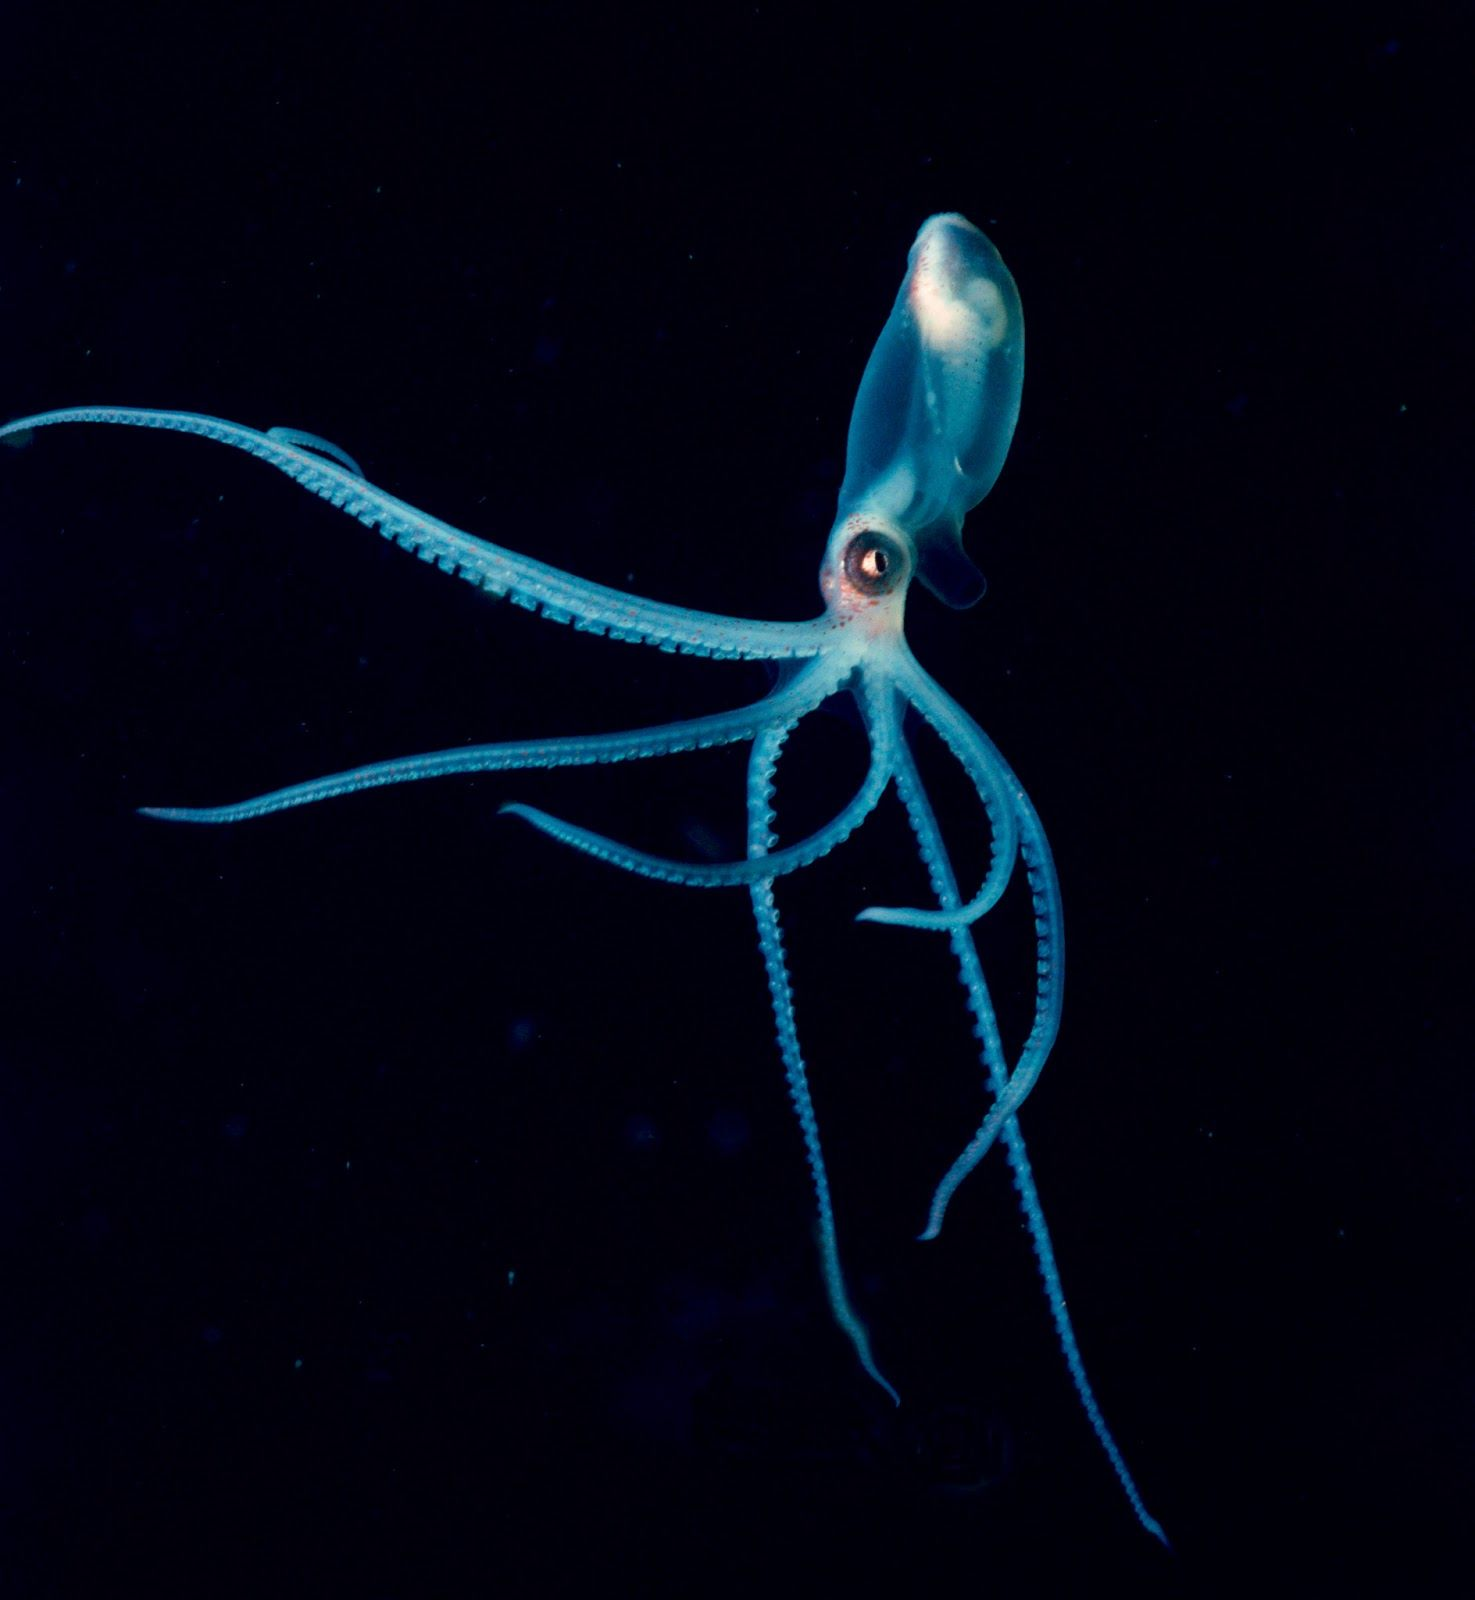 Explore Deep Blue Sea Octopuses And More